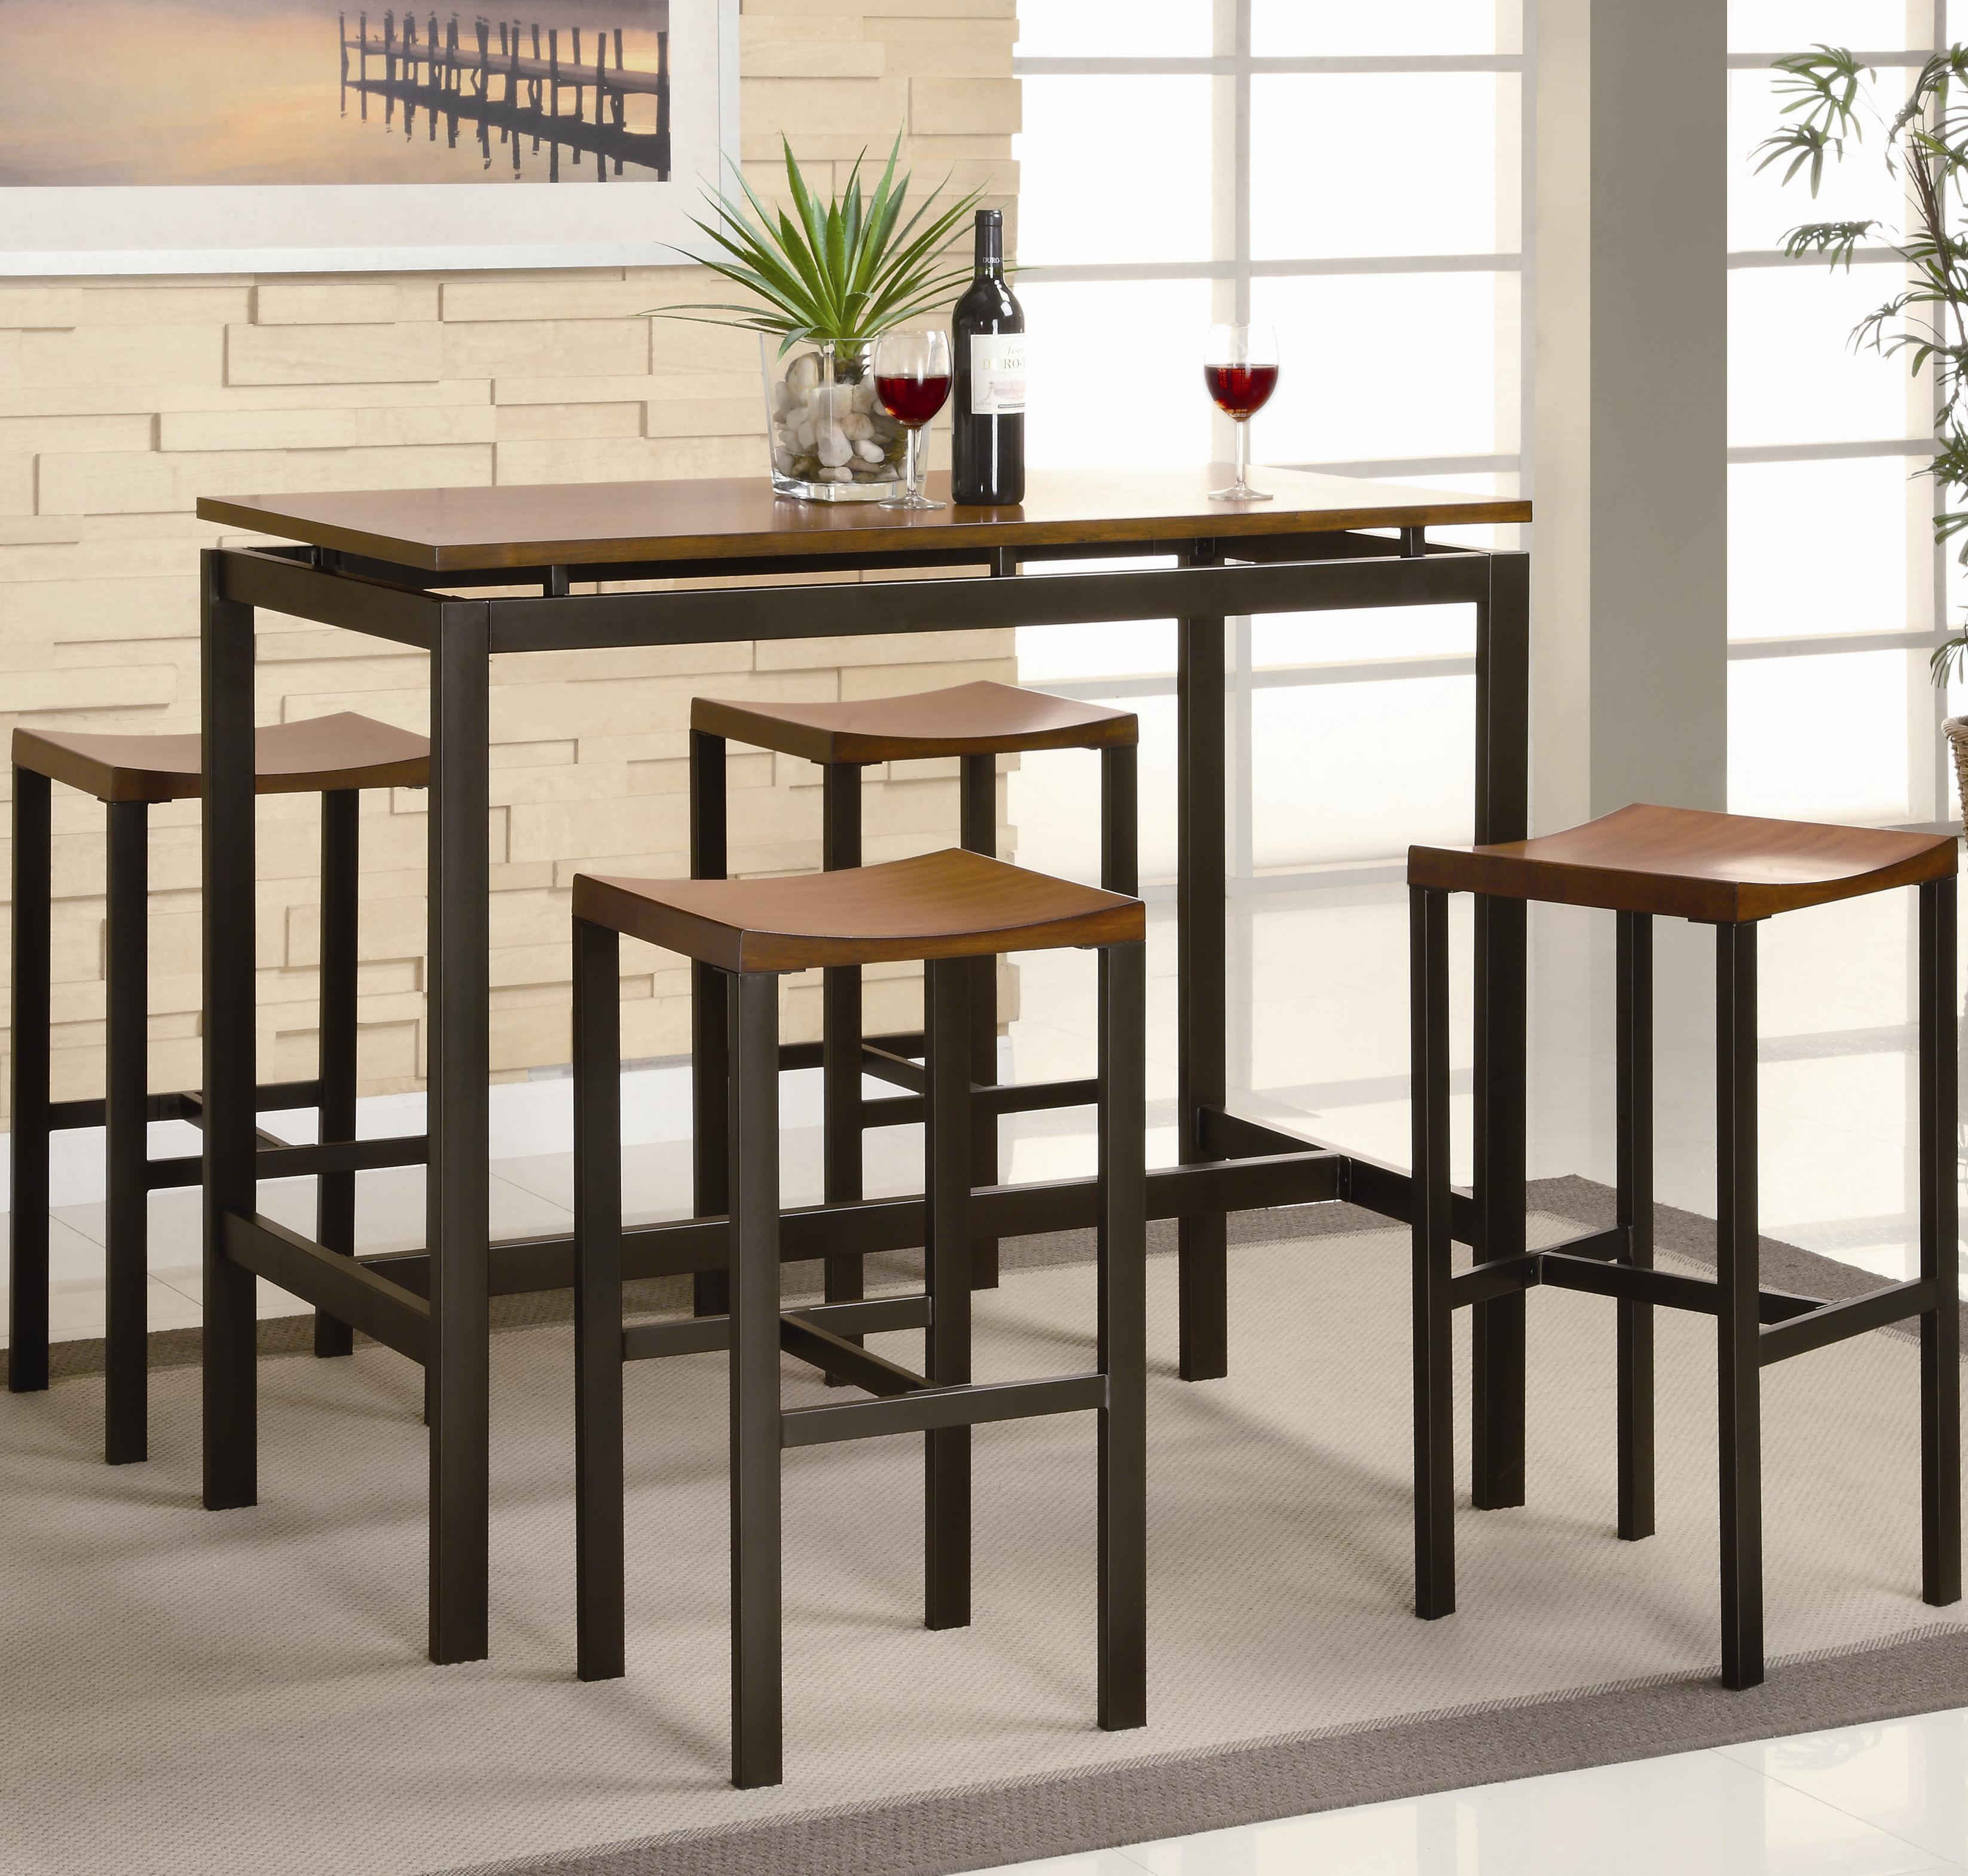 Atlus 5 Piece Counter Height Dining Set by Coaster at Standard Furniture